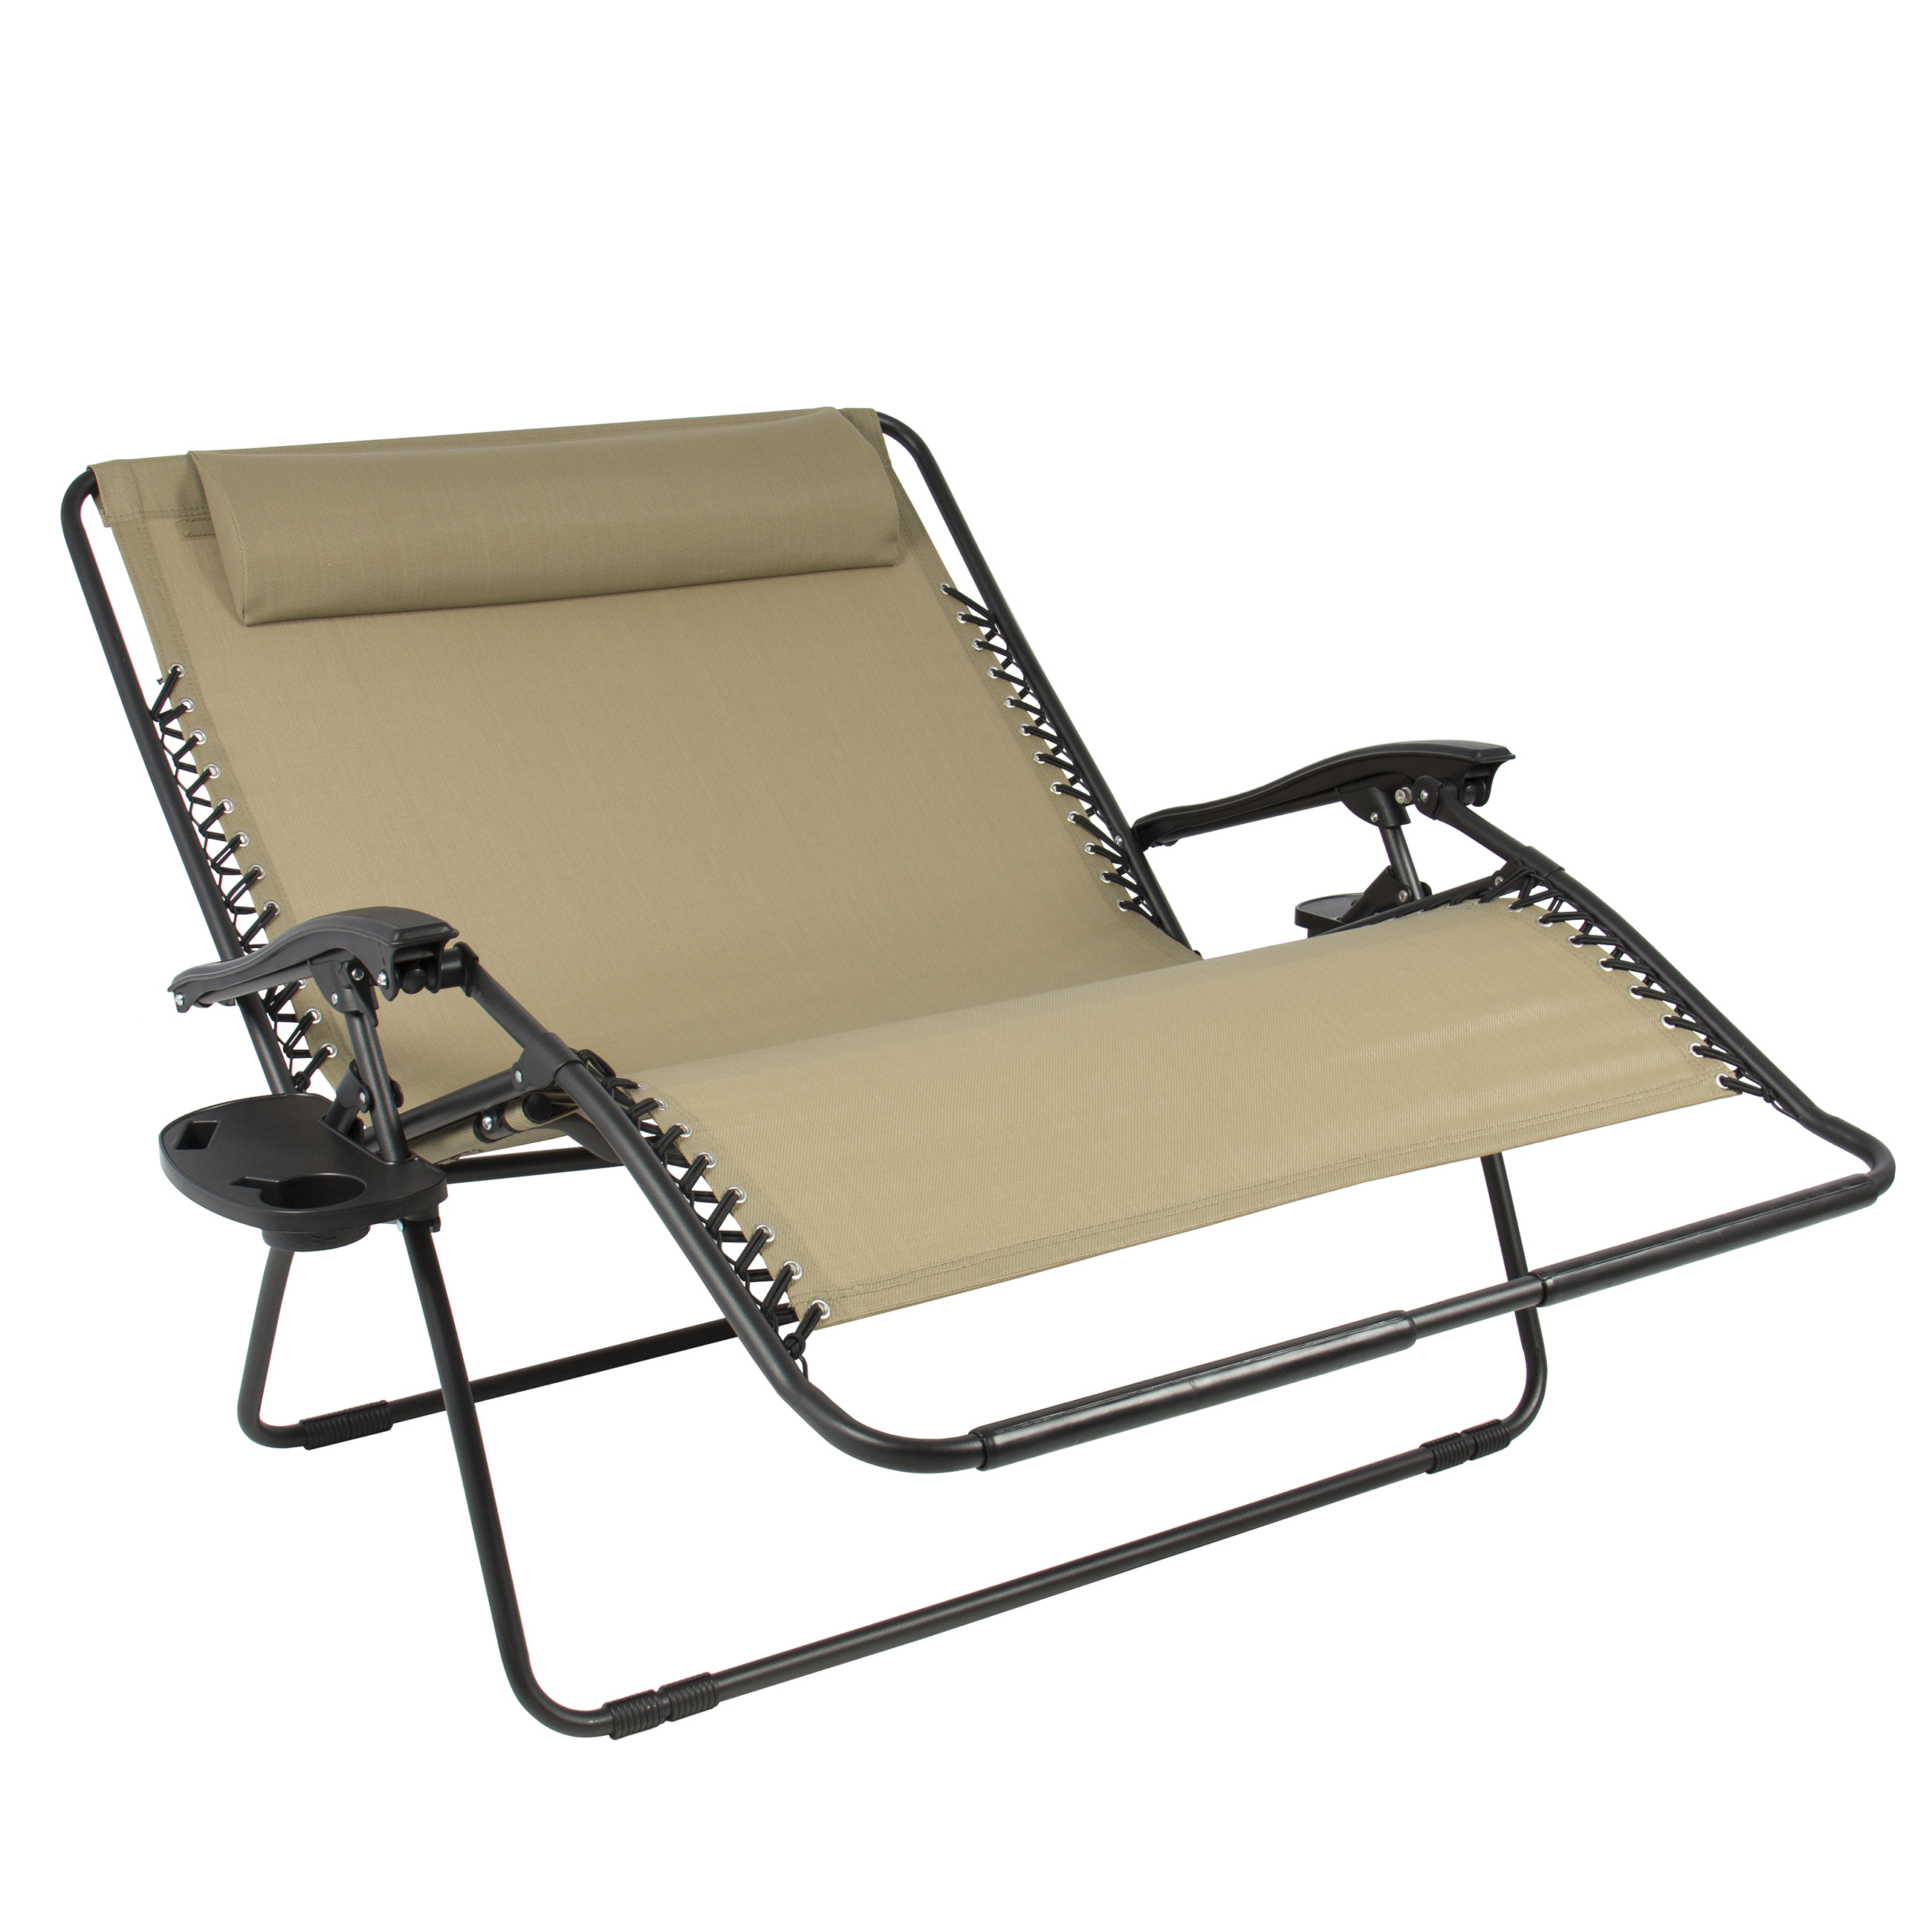 Huge Folding 2 Person Gravity Chair Double Wide Patio Lounger with